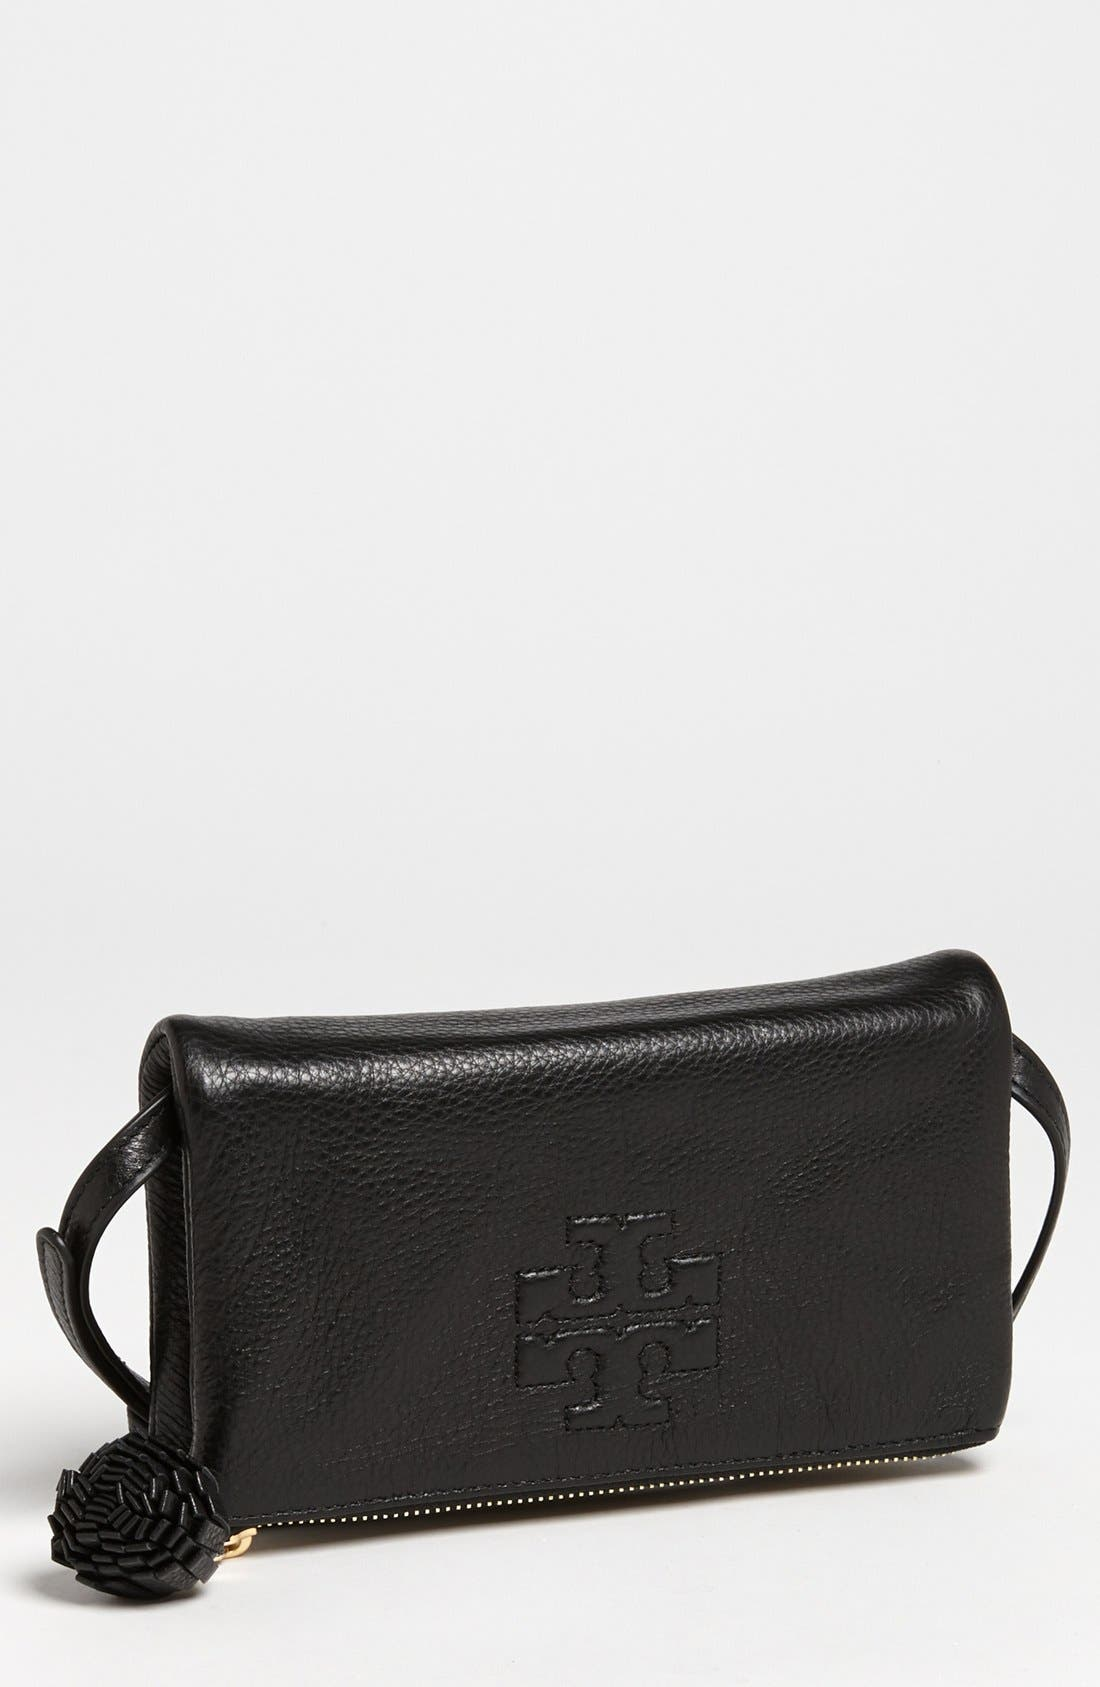 Main Image - Tory Burch 'Thea' Foldover Crossbody Bag